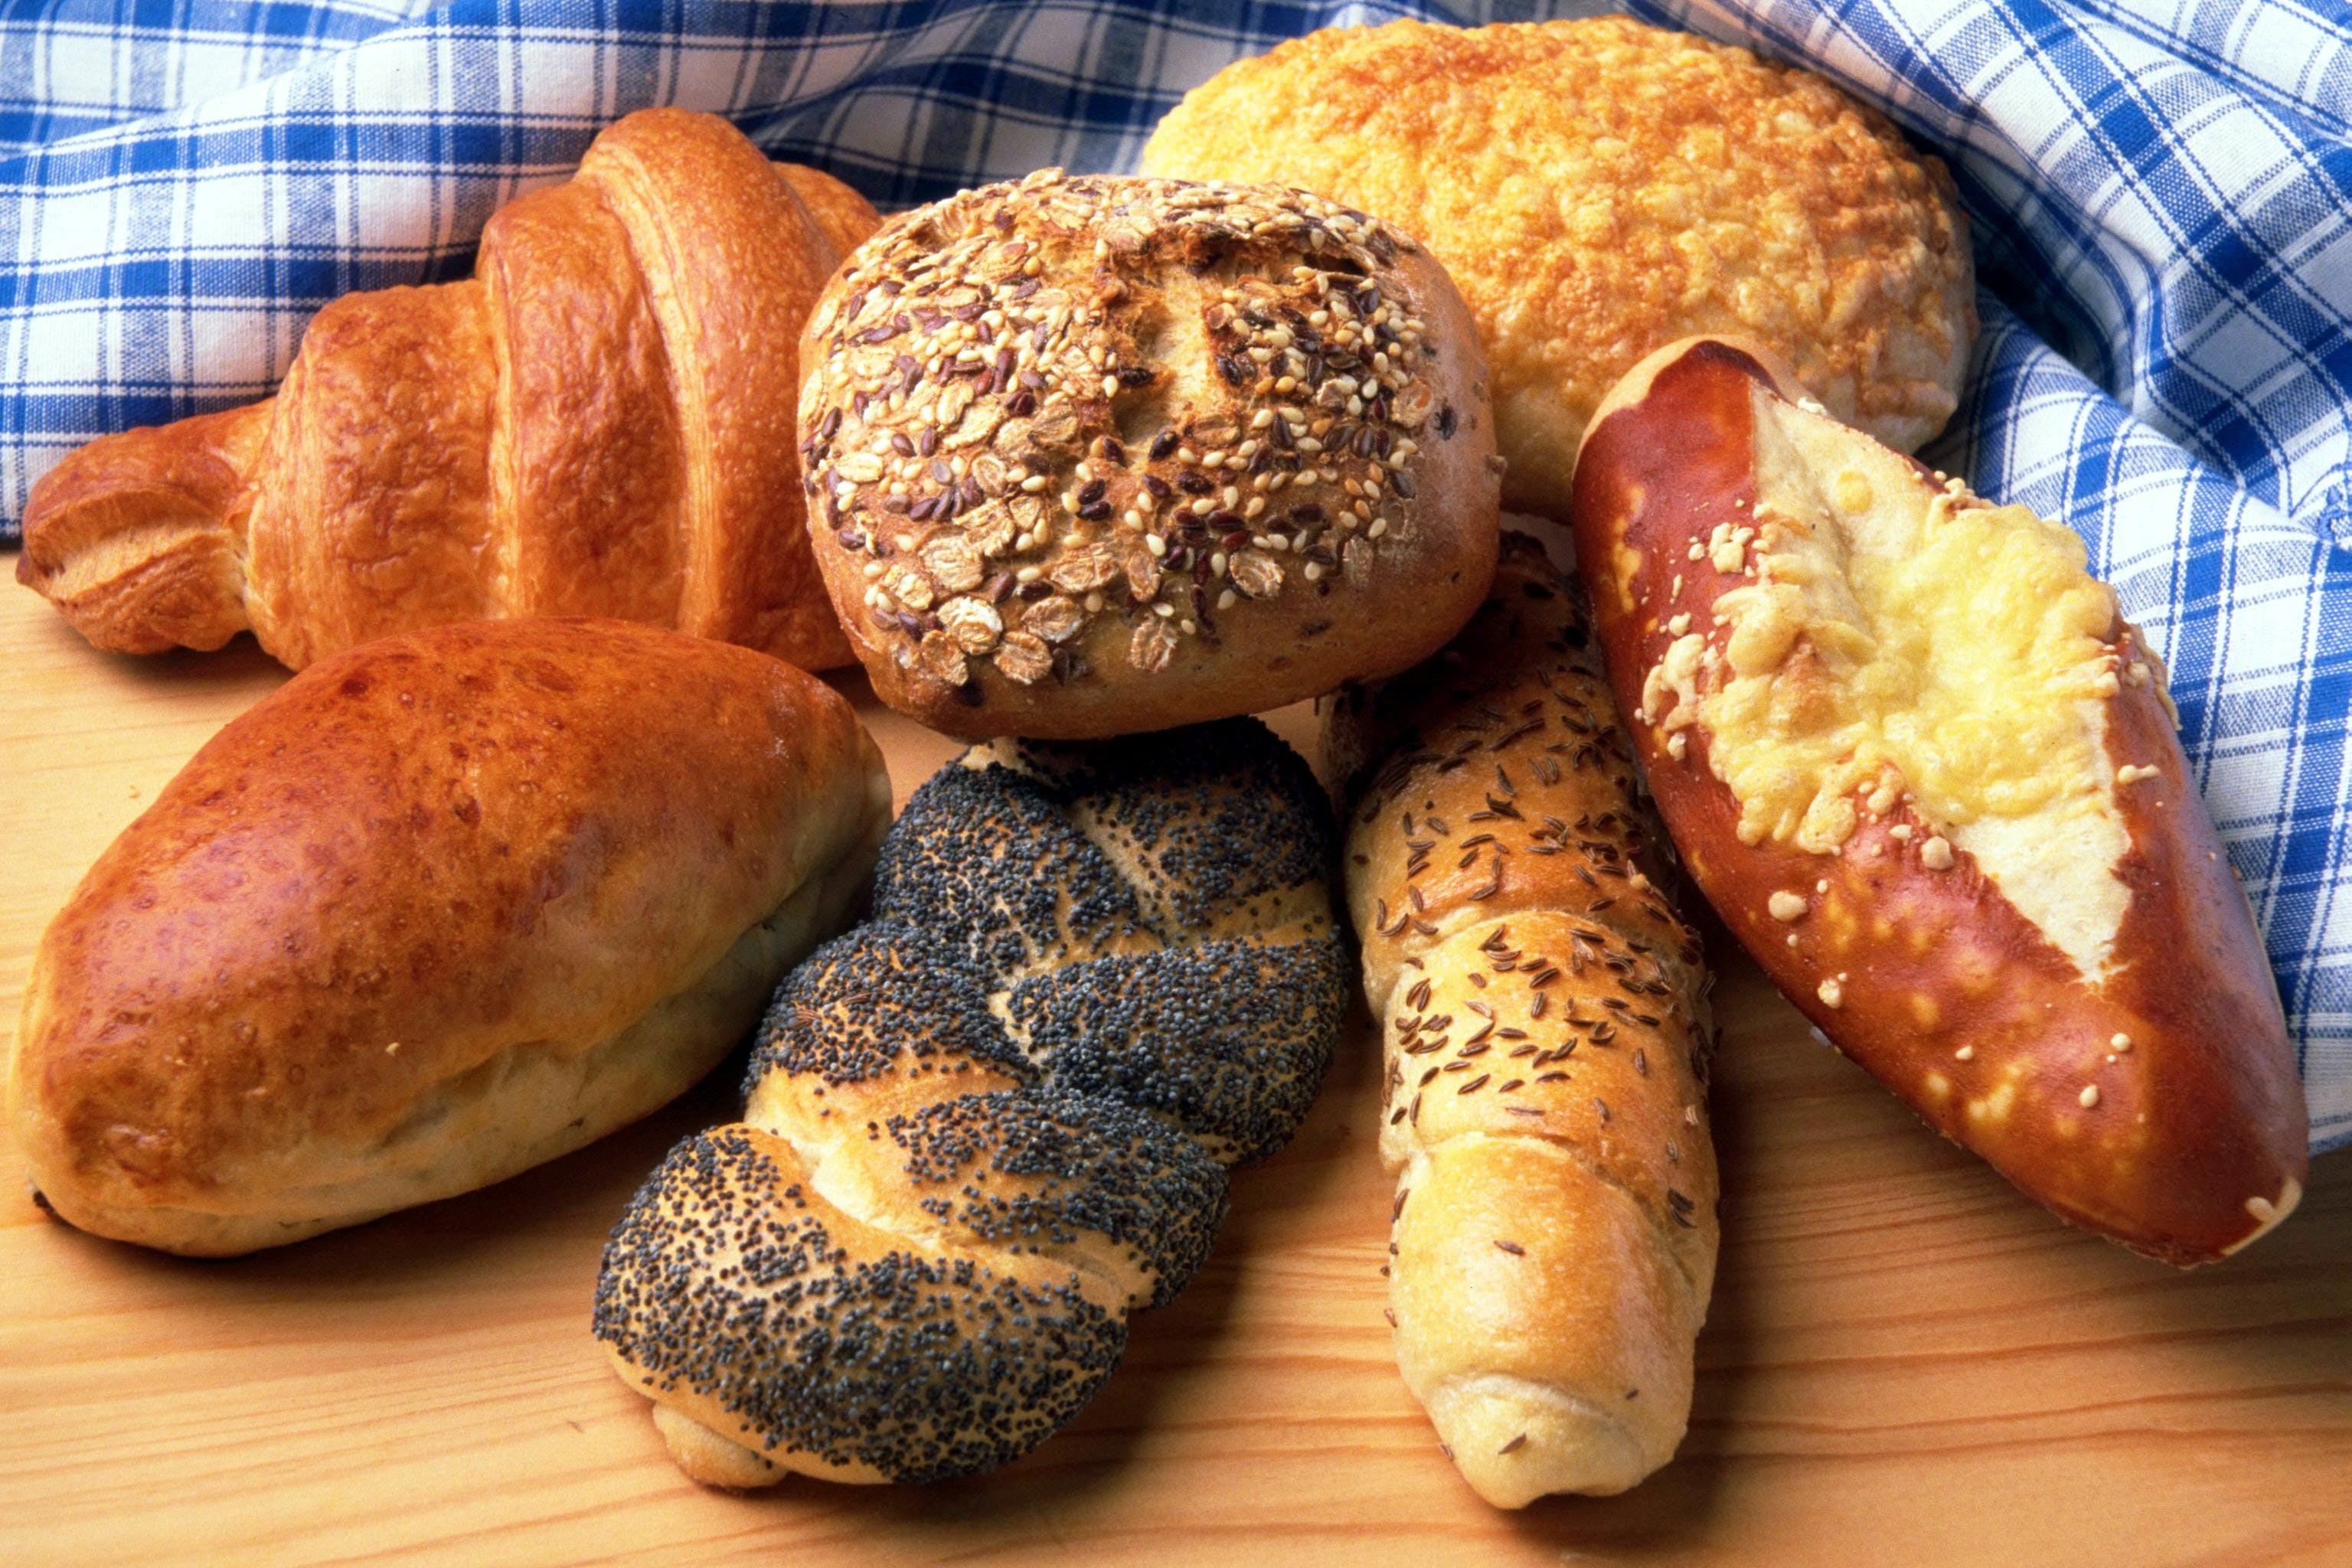 Stack of Baked Breads